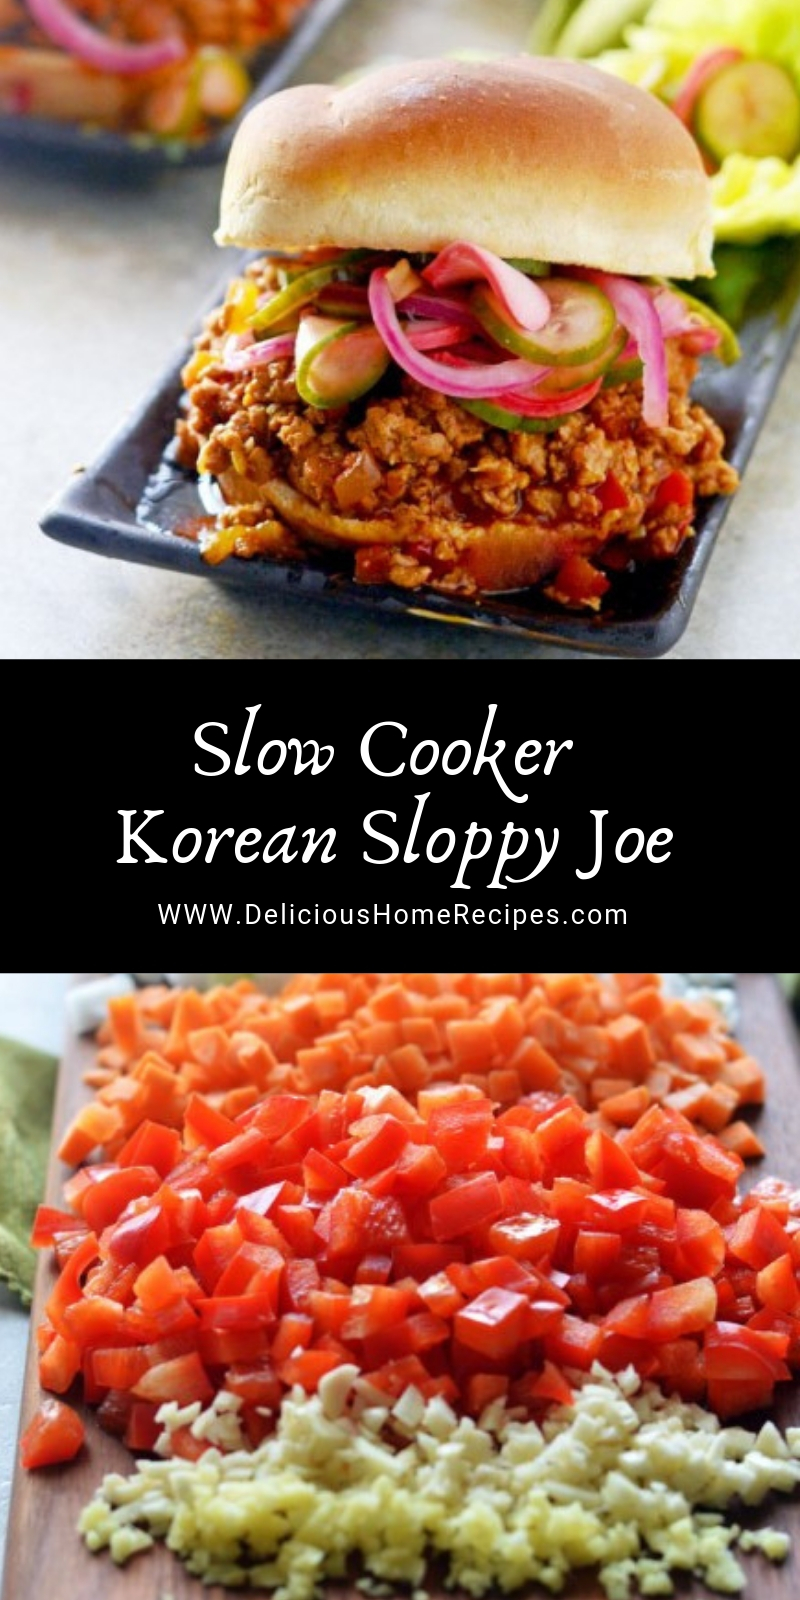 Slow Cooker Korean Sloppy Joe